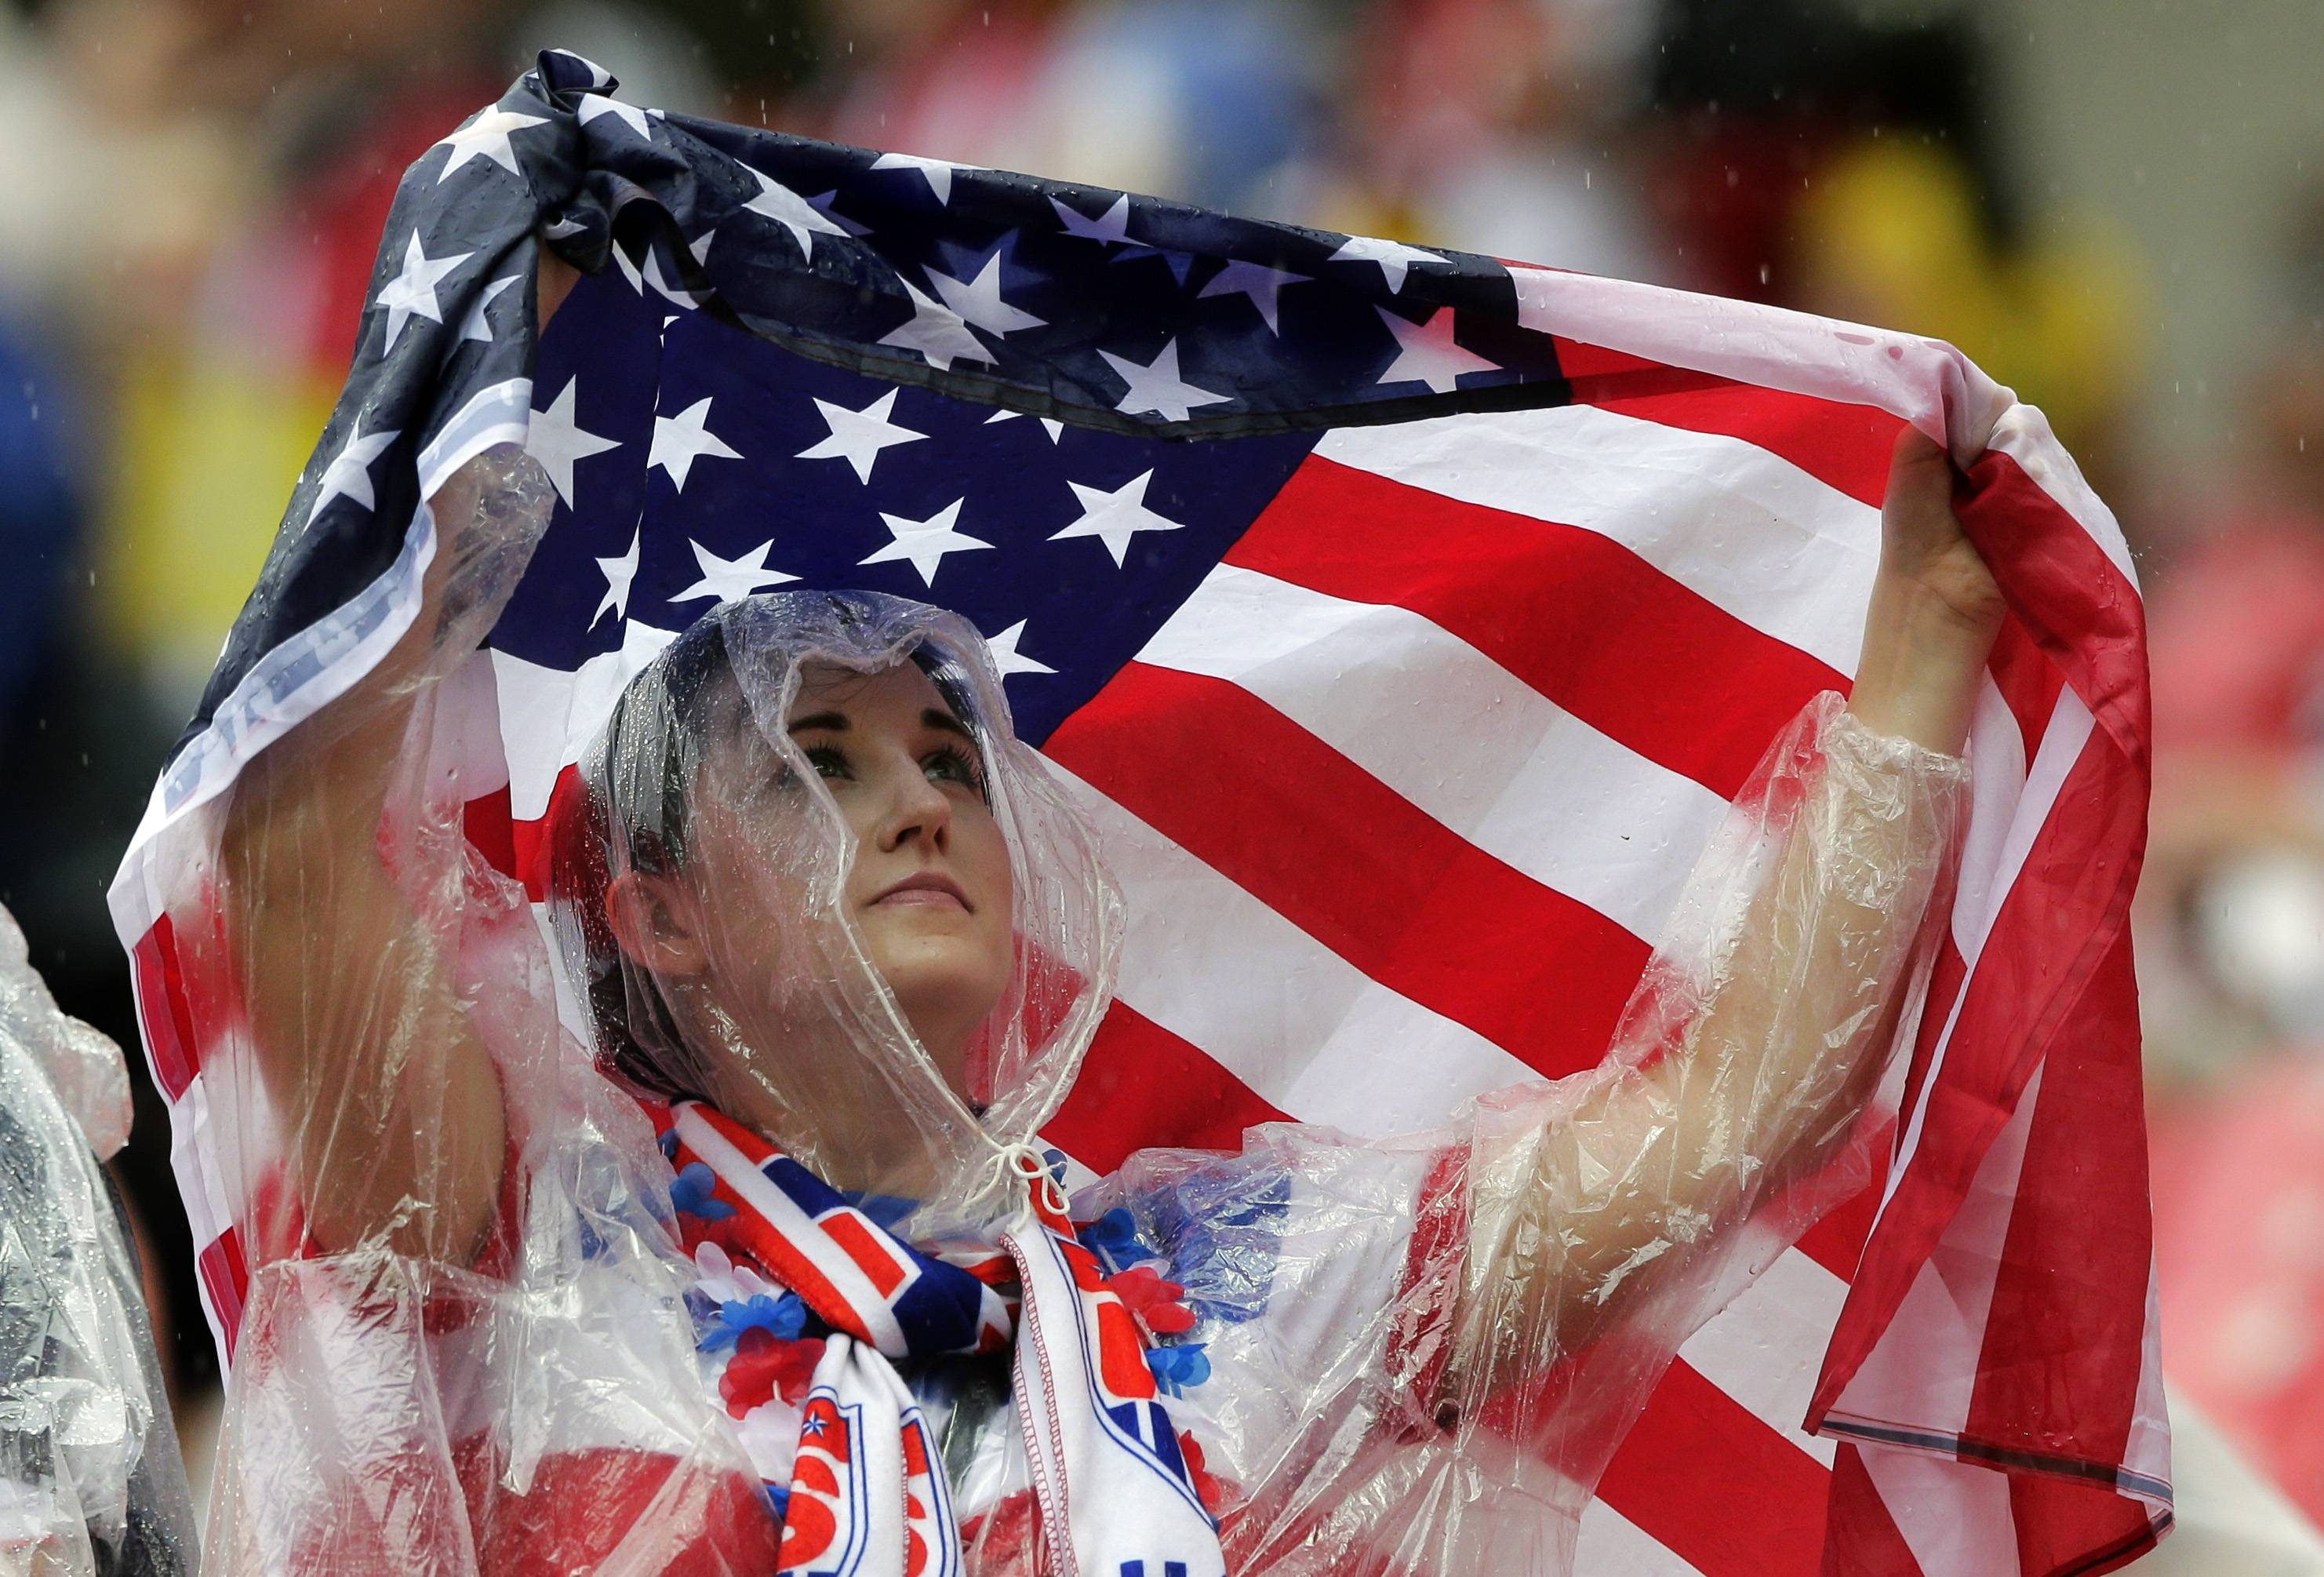 A US supporter uses an American flag to protect herself against the rain during the group G World Cup soccer match between the USA and Germany at the Arena Pernambuco in Recife, Brazil, Thursday, June 26, 2014.